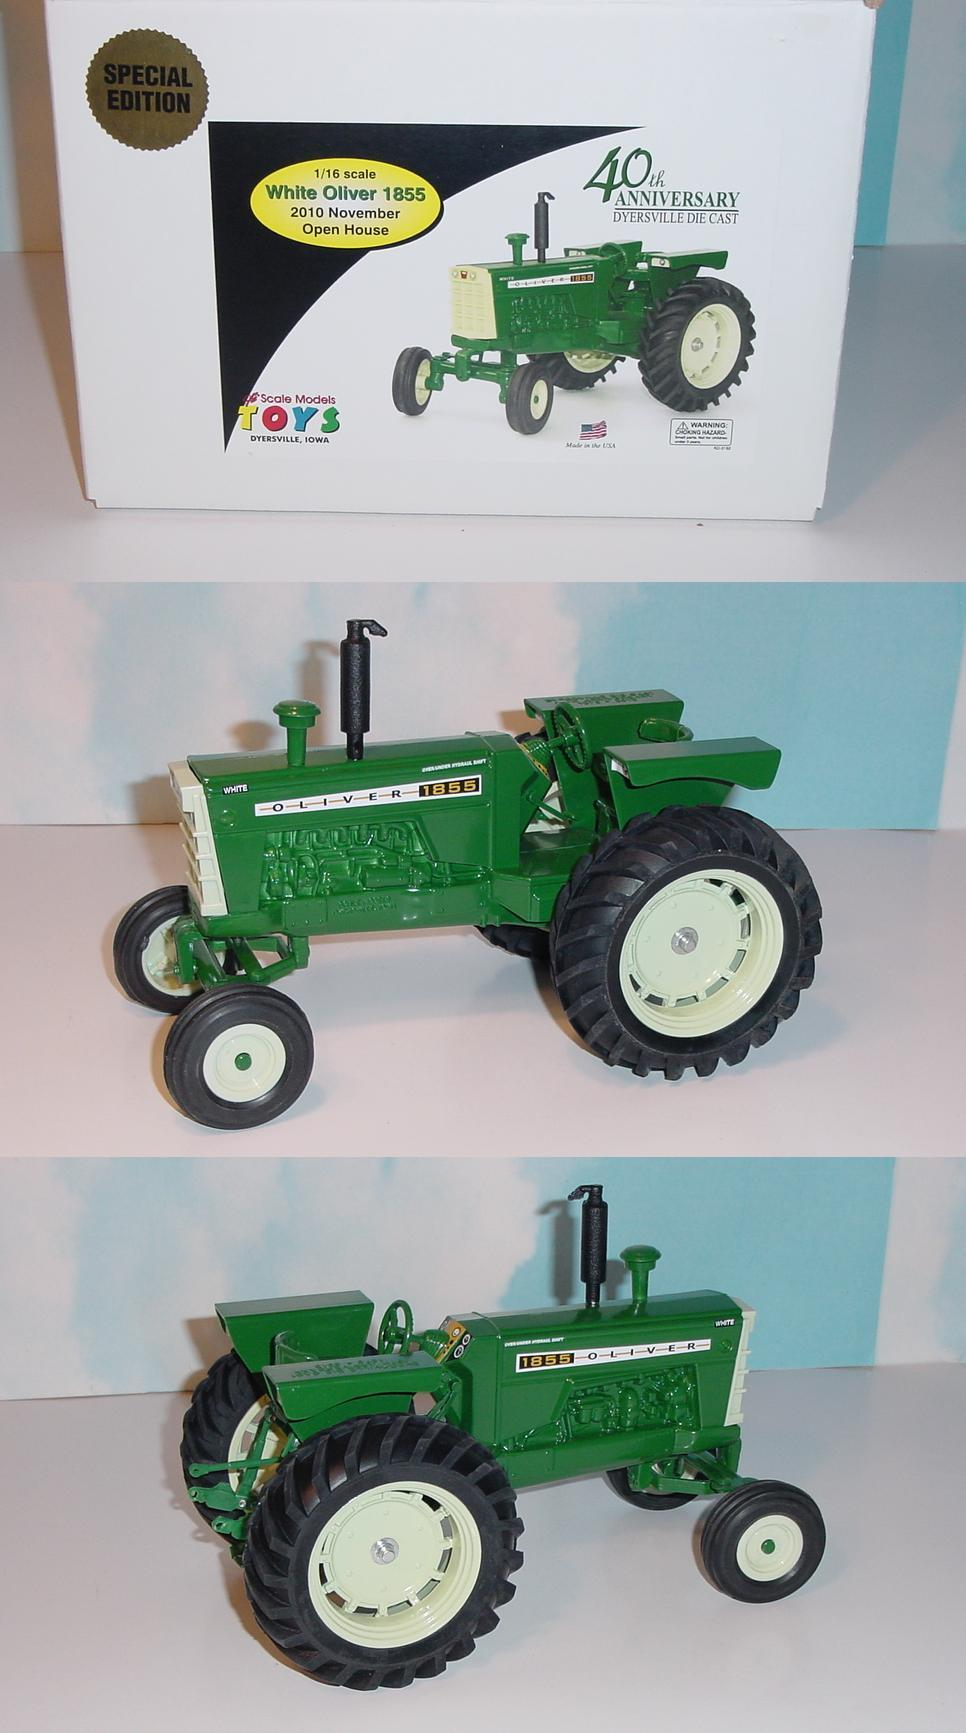 88 Oliver Tractor Wiring Diagram as well Lgtpictures likewise PIT 20BULL 20PUPPY likewise Hydraulicsystem besides T3132639 Farmall h switch over a12volt. on oliver 60 tractor wiring diagram